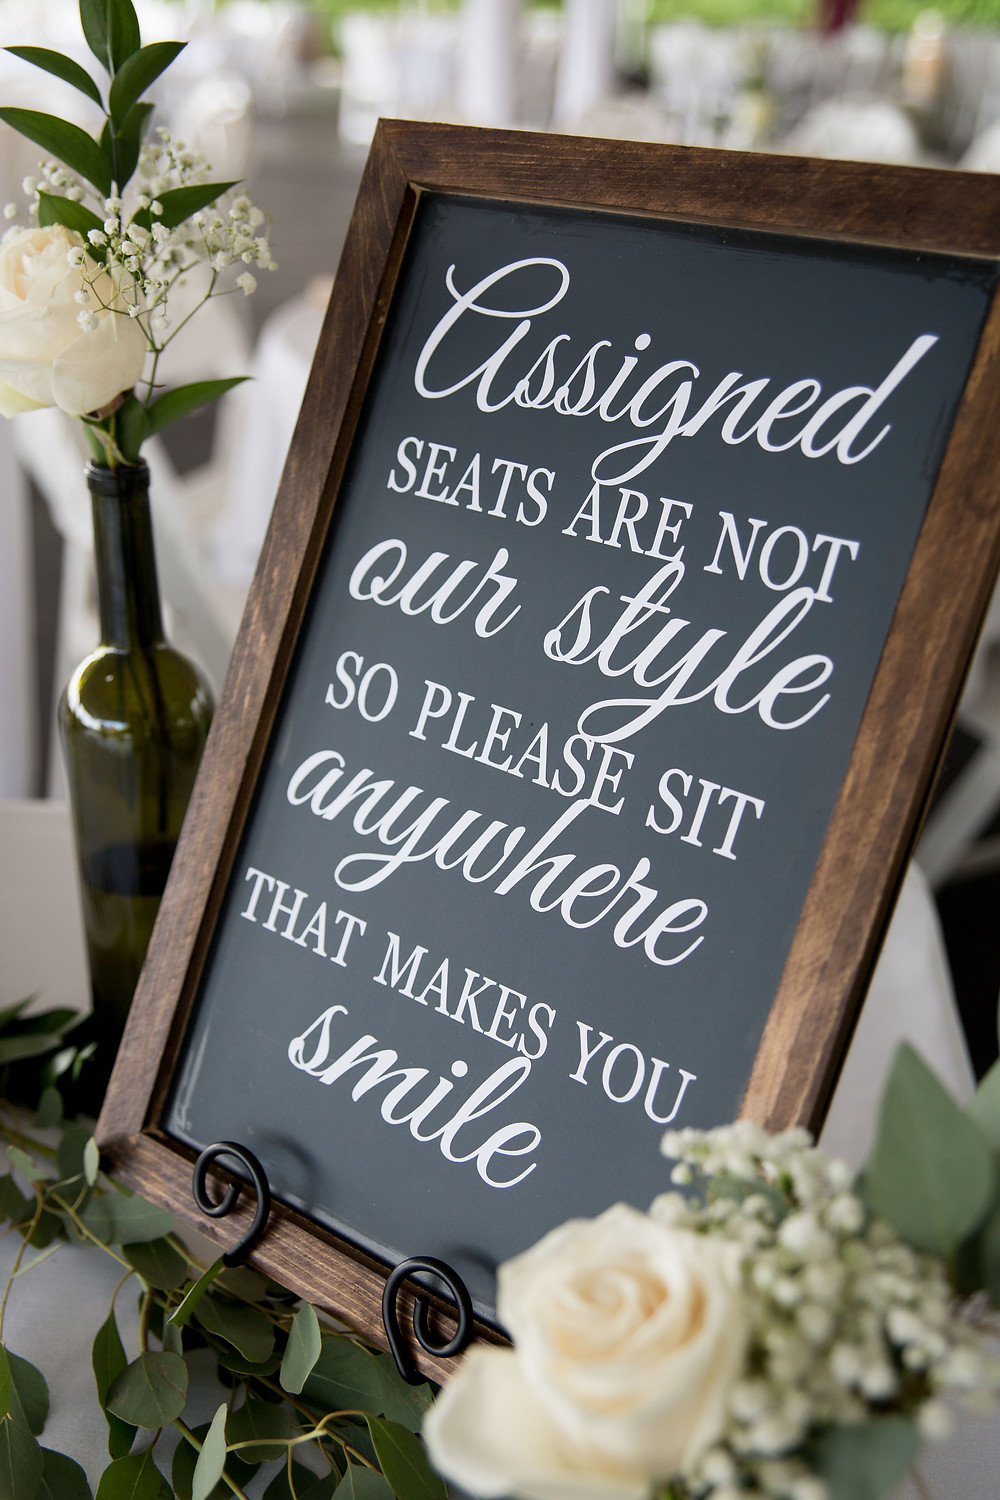 wedding traditions you can skip assigned seating and dinner time